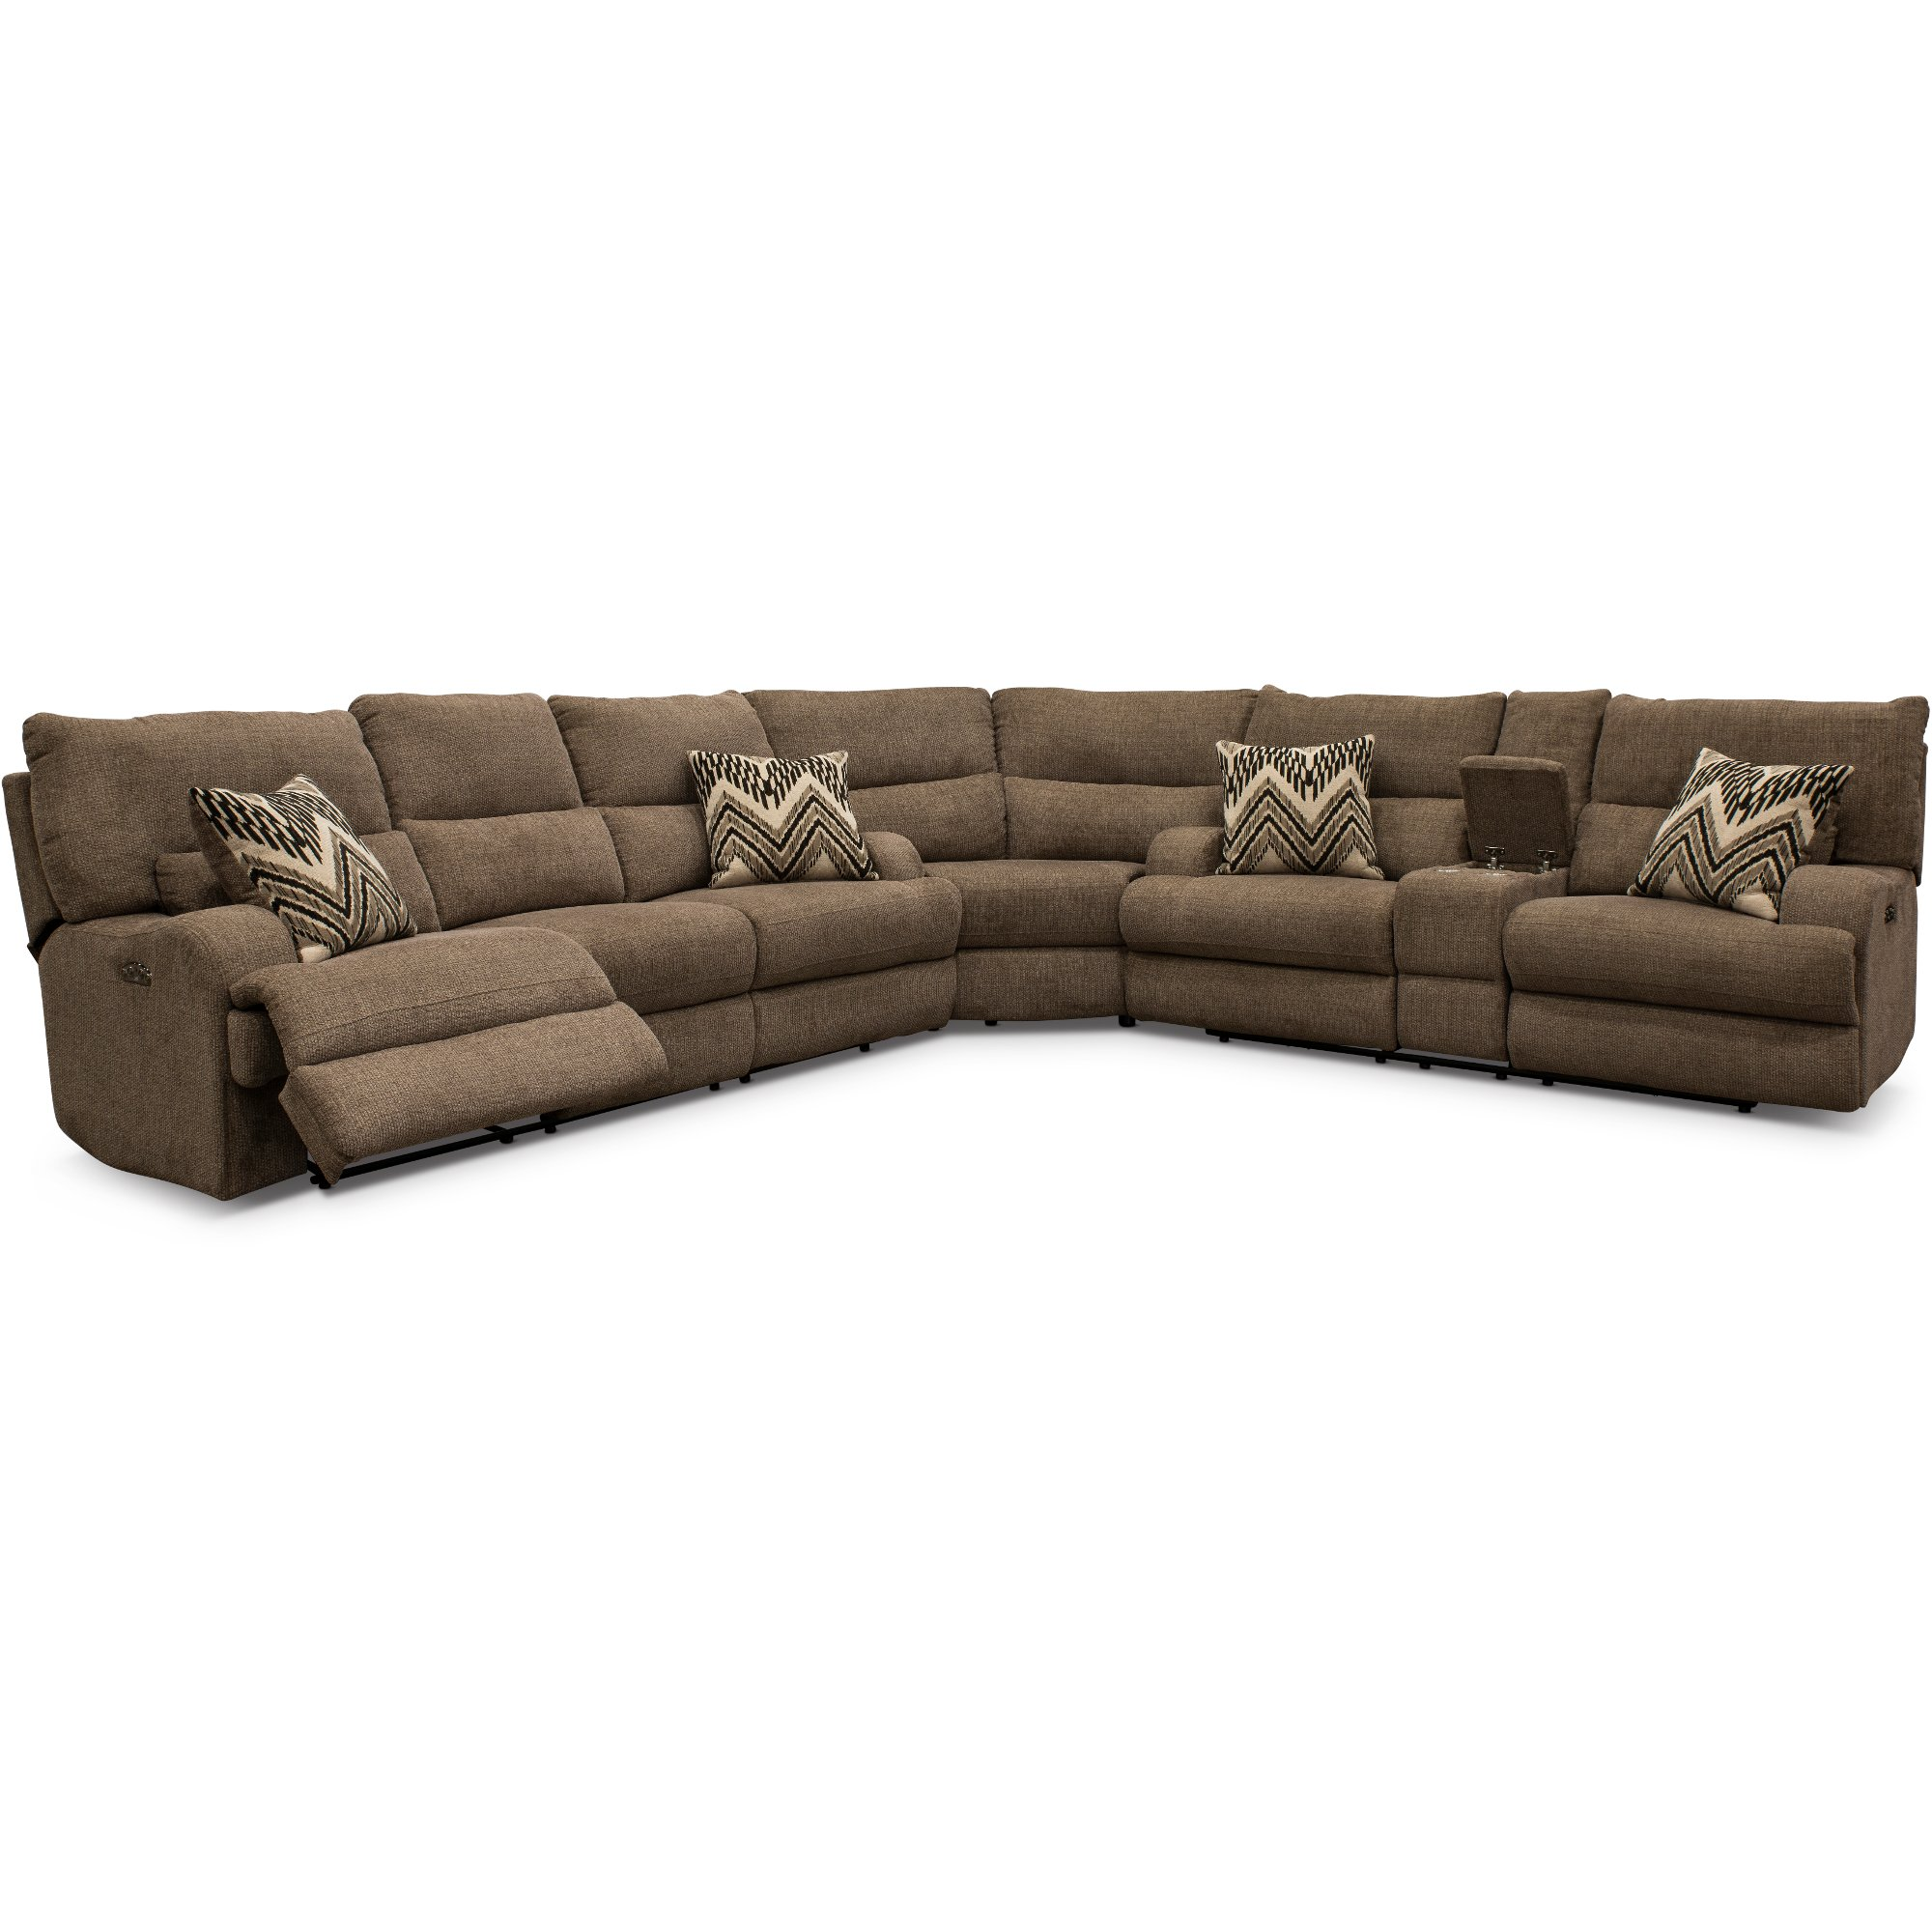 Sofa Bed Express Delivery Shop Living Room Sectionals Furniture Store Rc Willey